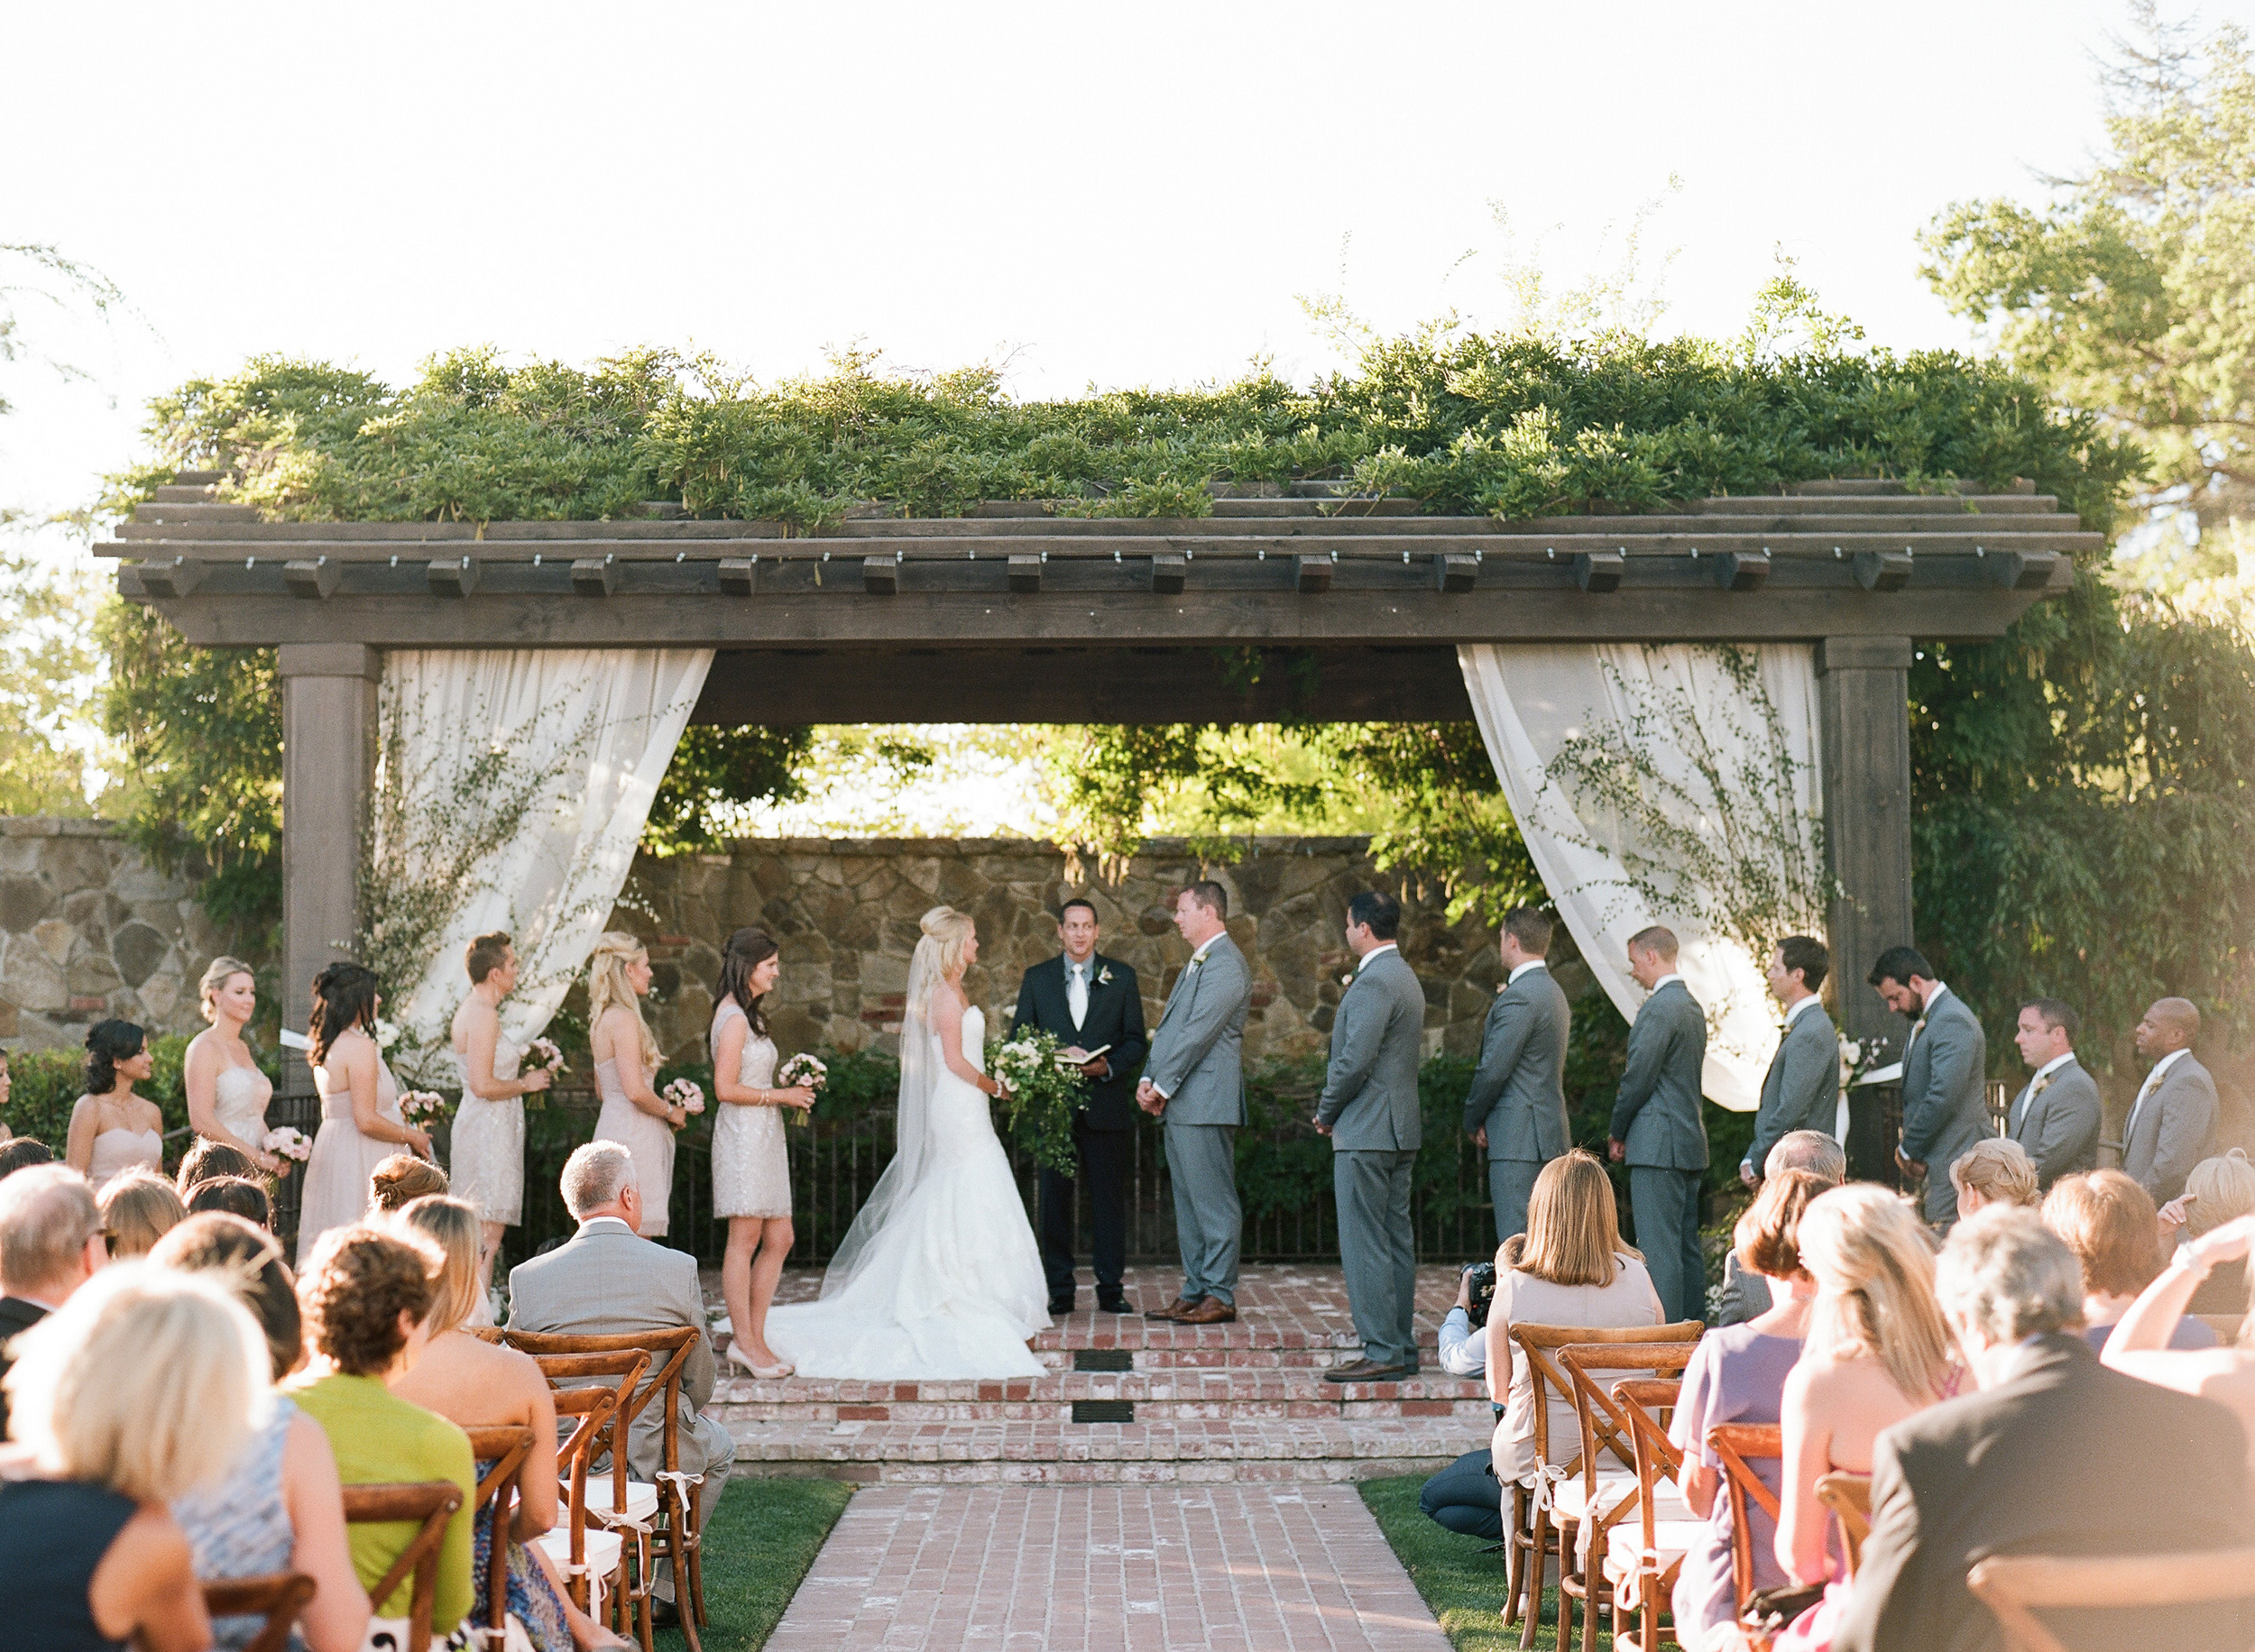 Megan and Brett exchange vows in front of friends and family in their gorgeous Napa venue; photo by Sylvie Gil